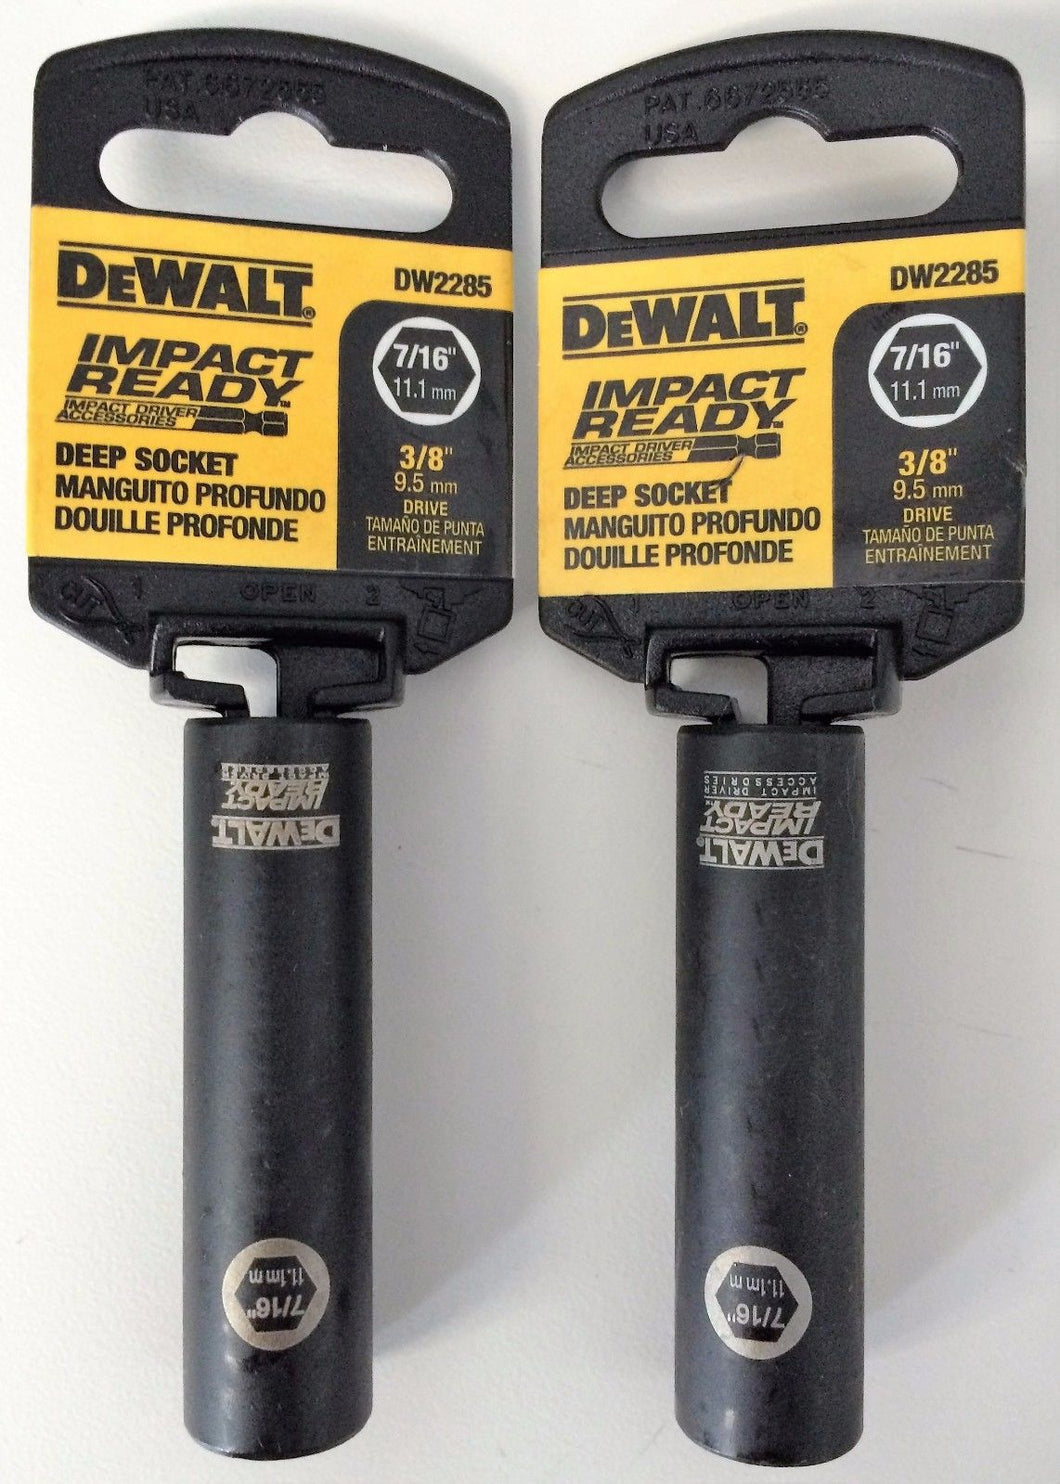 Dewalt DW2285 Impact Ready Deep Socket 7/16